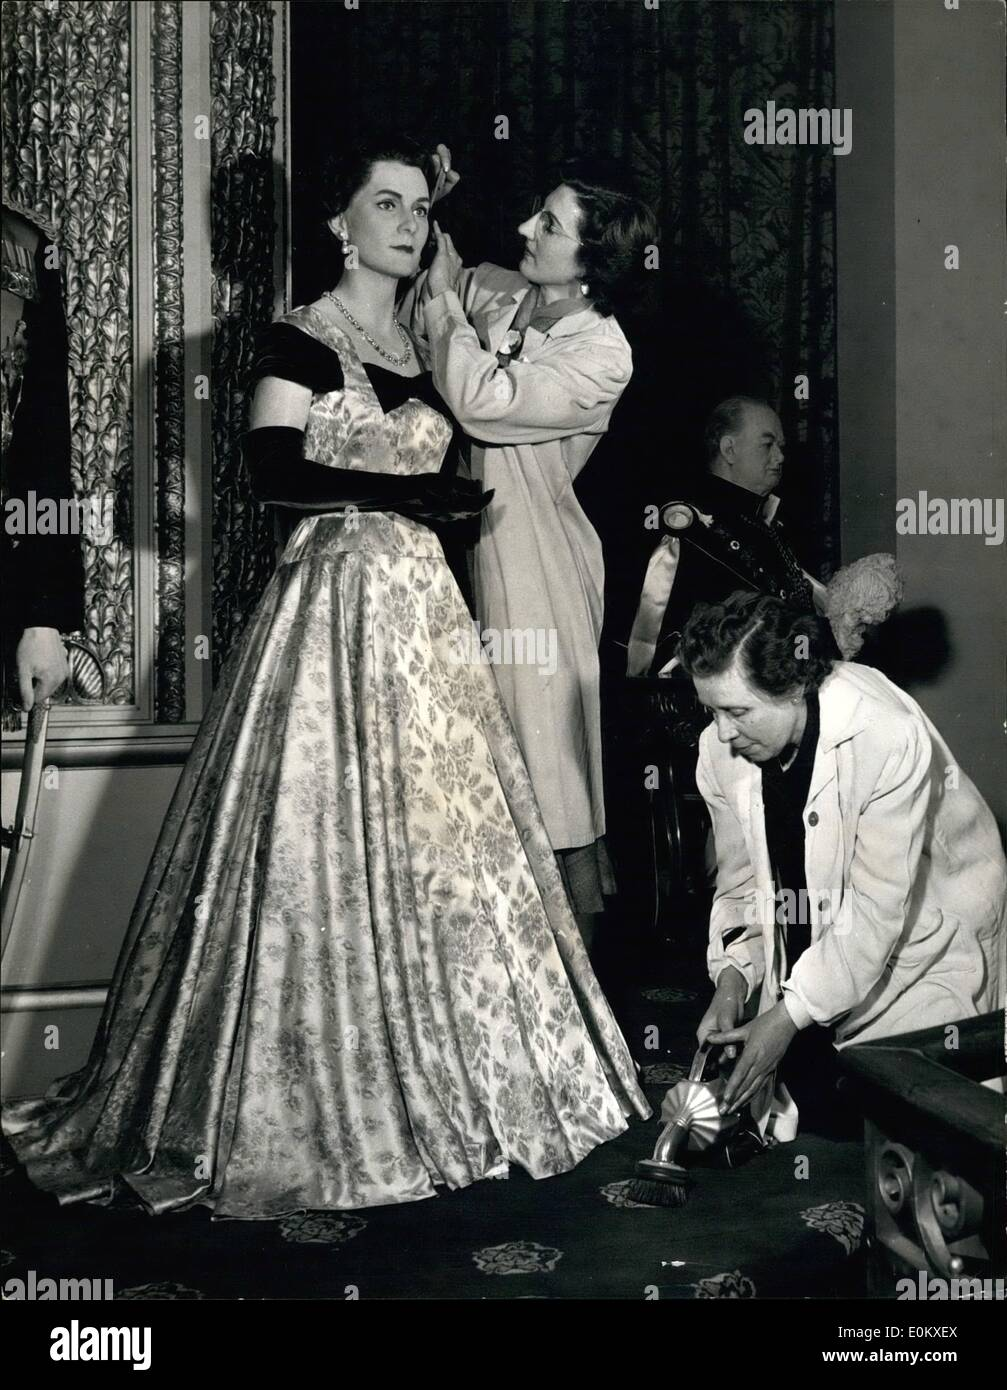 Jun. 06, 1952 - H.R.H. the duchess of Gloucester at Madame Tussaud's: Finishing touches are put to the hair of the Duchess of Gloucester by Miss Jean Fraser, assistant beautician at Tussand's, while Miss ''Scotty'' Hill vacuums the reproduction of the throne room carpet on which the figures of the new Royal group are placed. The Royal group at Madame Tussaud's: Latest attraction, ready for the Summer Season when thousands of foreign visitors explore its rooms filled with wax figures of the famous of the past and the present, is a new group of Royal figures - Stock Image